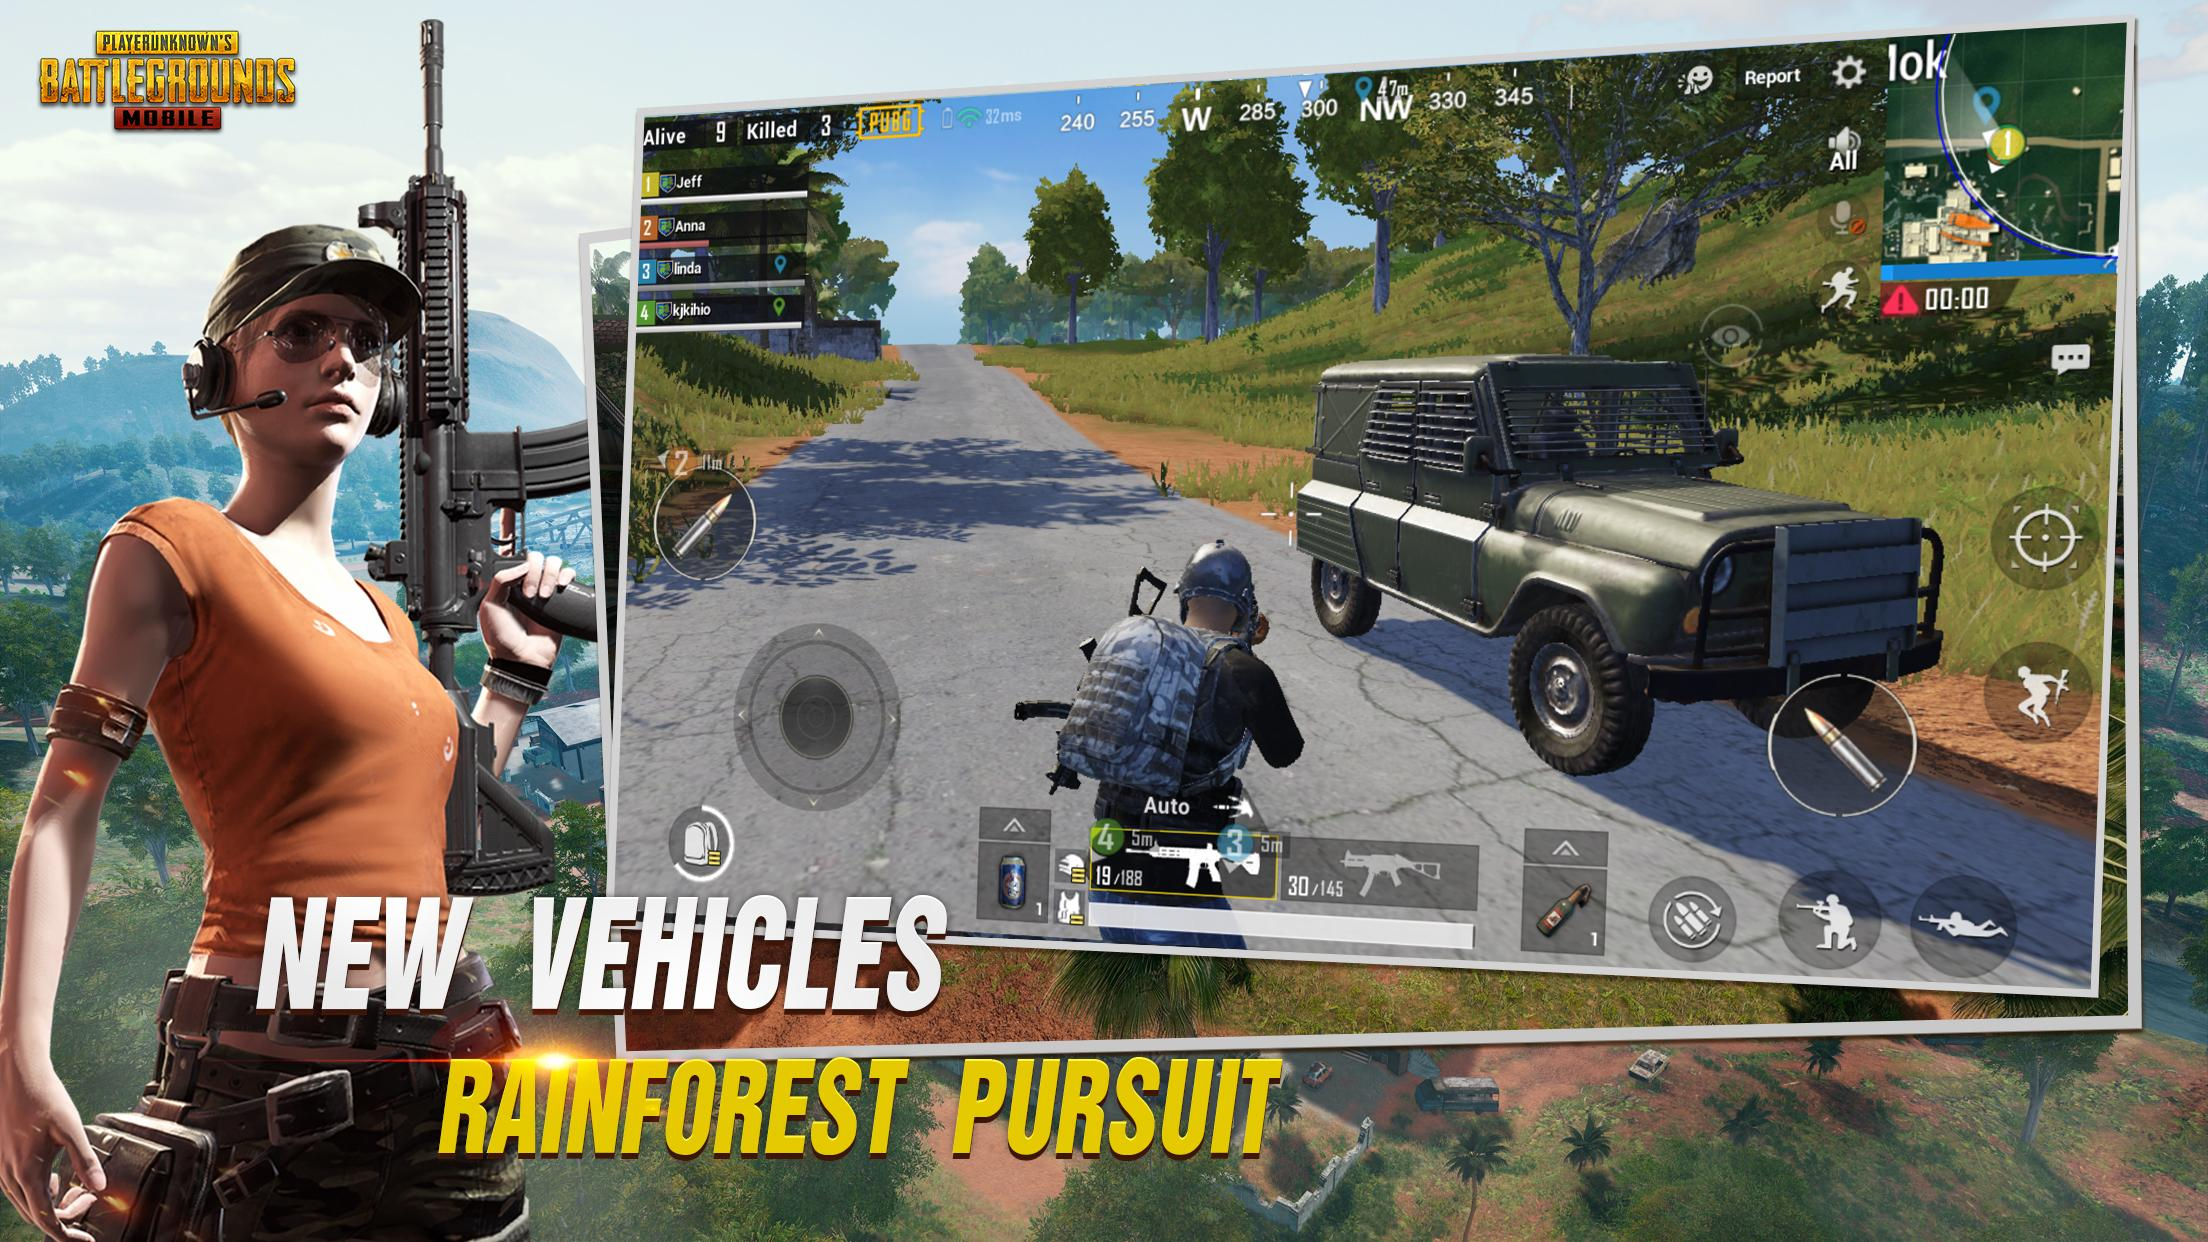 PUBG Mobile v0 8 0 adds Sanhok map, new vehicles, and more [APK